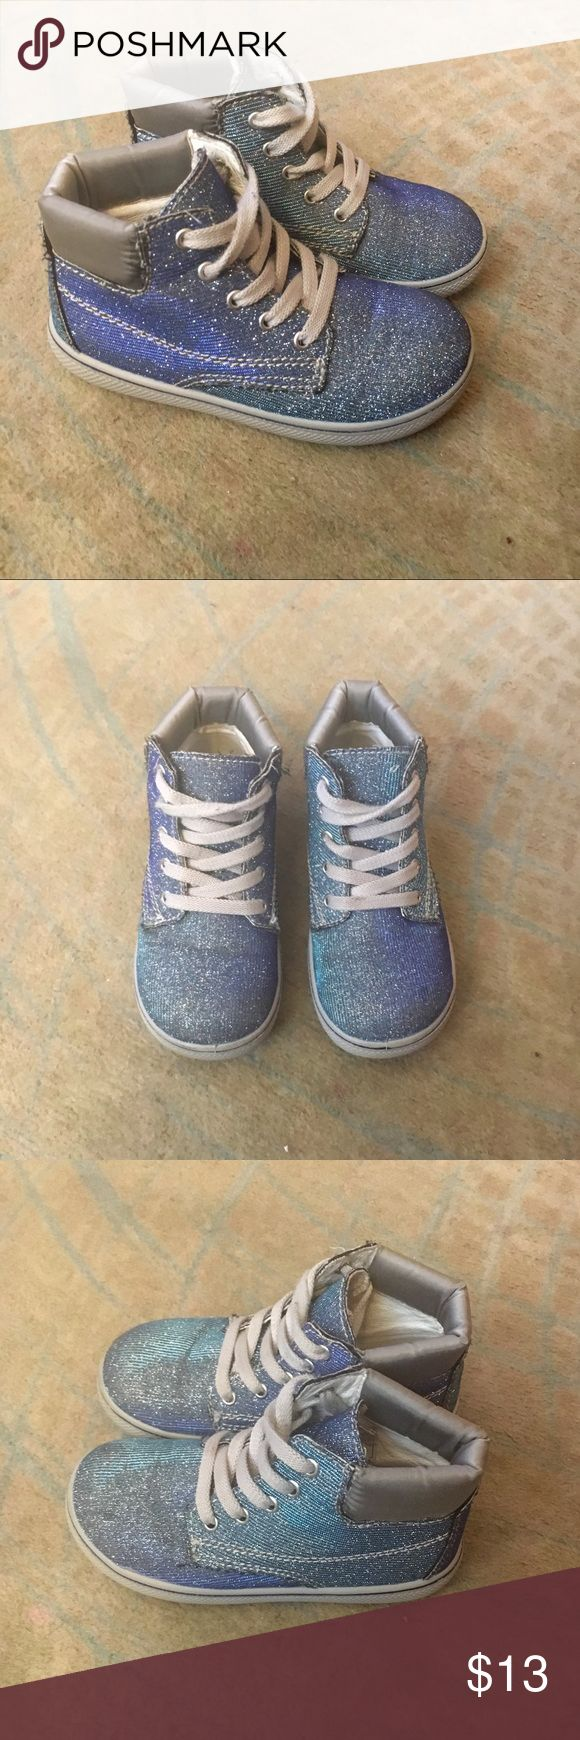 Sparkly Metallic Shimmer Sneaker Boot Blue Sparkly metallic, shimmer sneaker boot. In excellent. EXCELLENT condition with lots of life left! Awesomely cool for any day! 😎 Primigi Shoes Sneakers